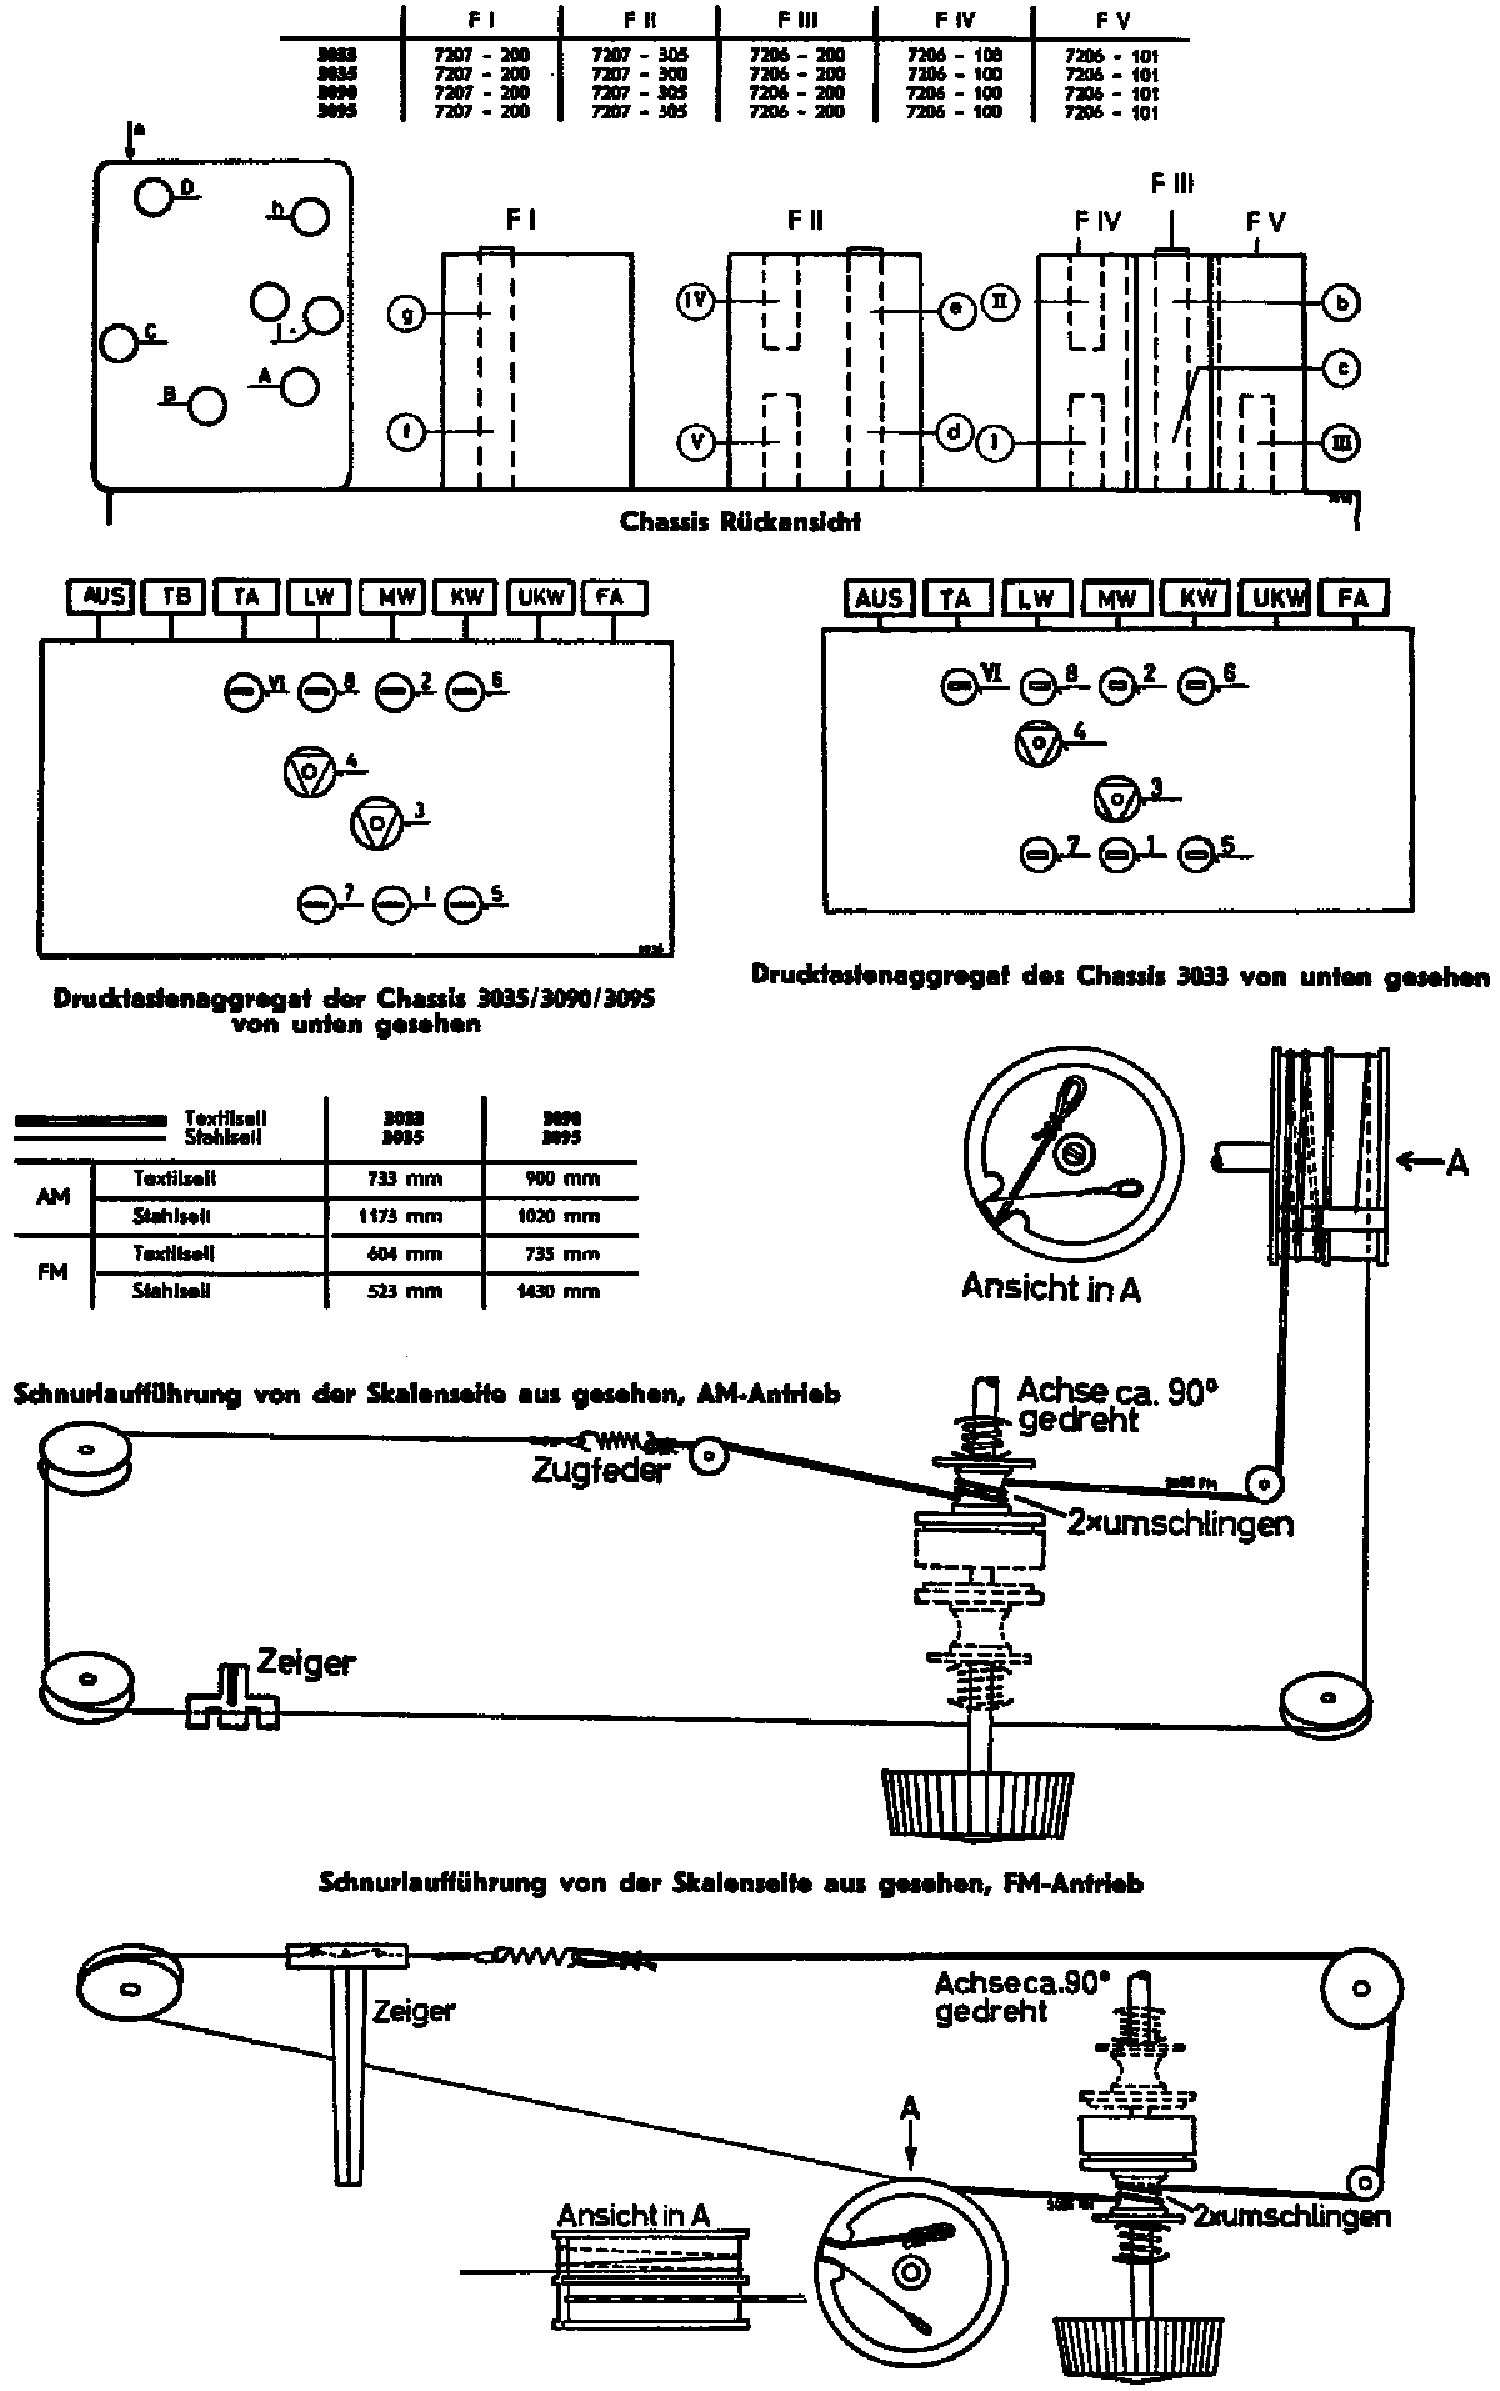 GRUNDIG 3035WF3D AM-FM RADIO 1956 SCH service manual (2nd page)